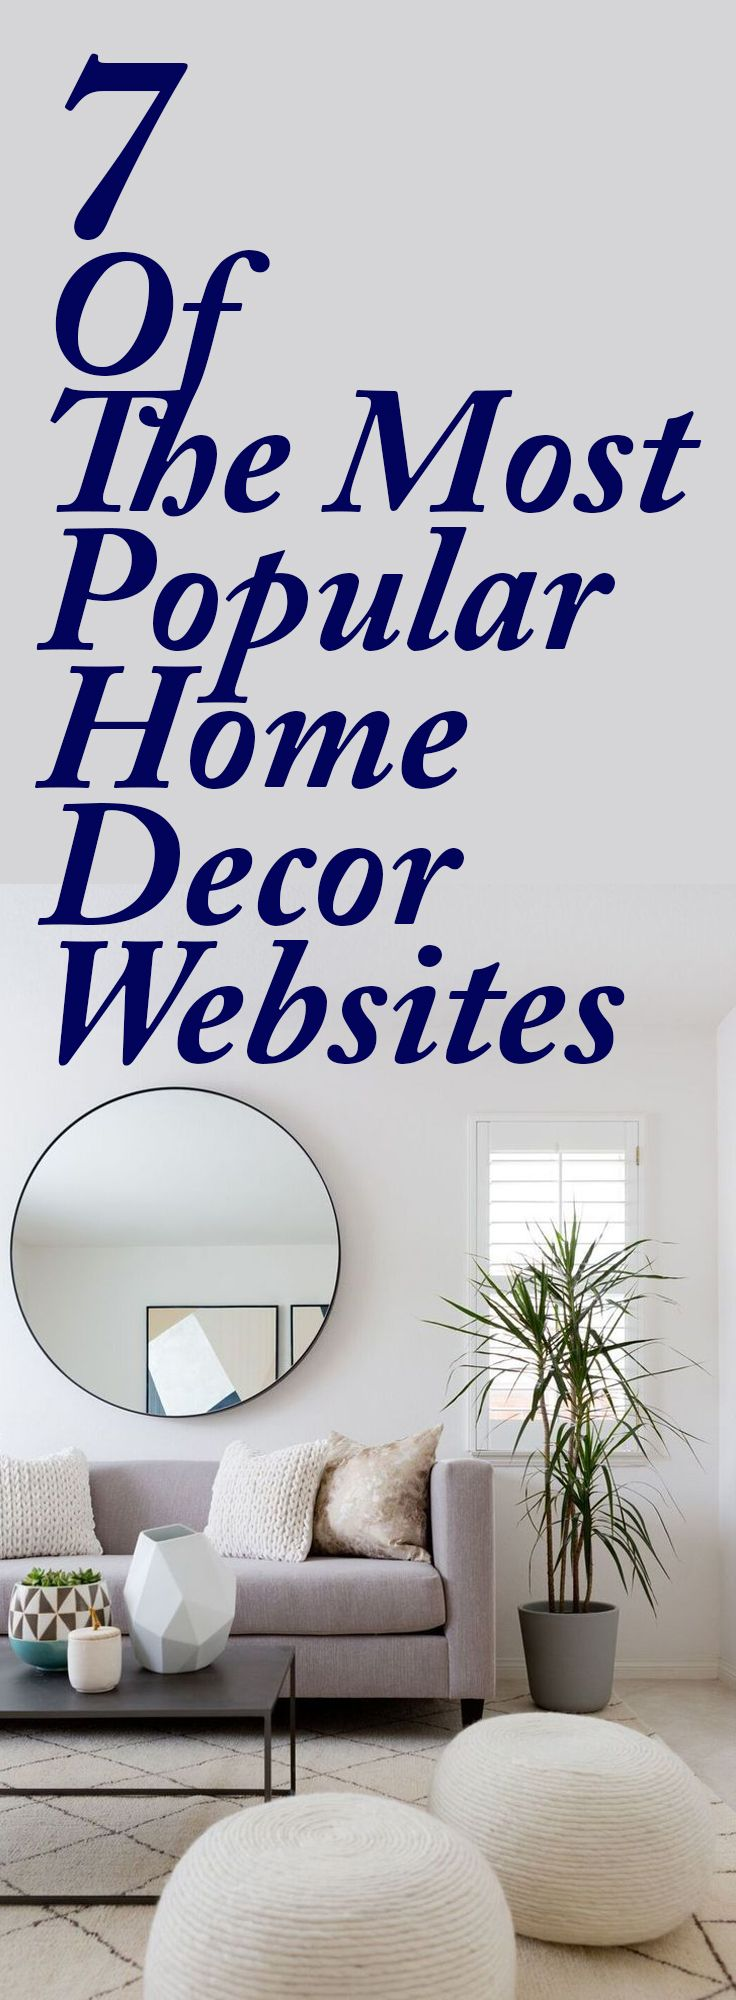 7 Of The Most Popular Home Decor Websites